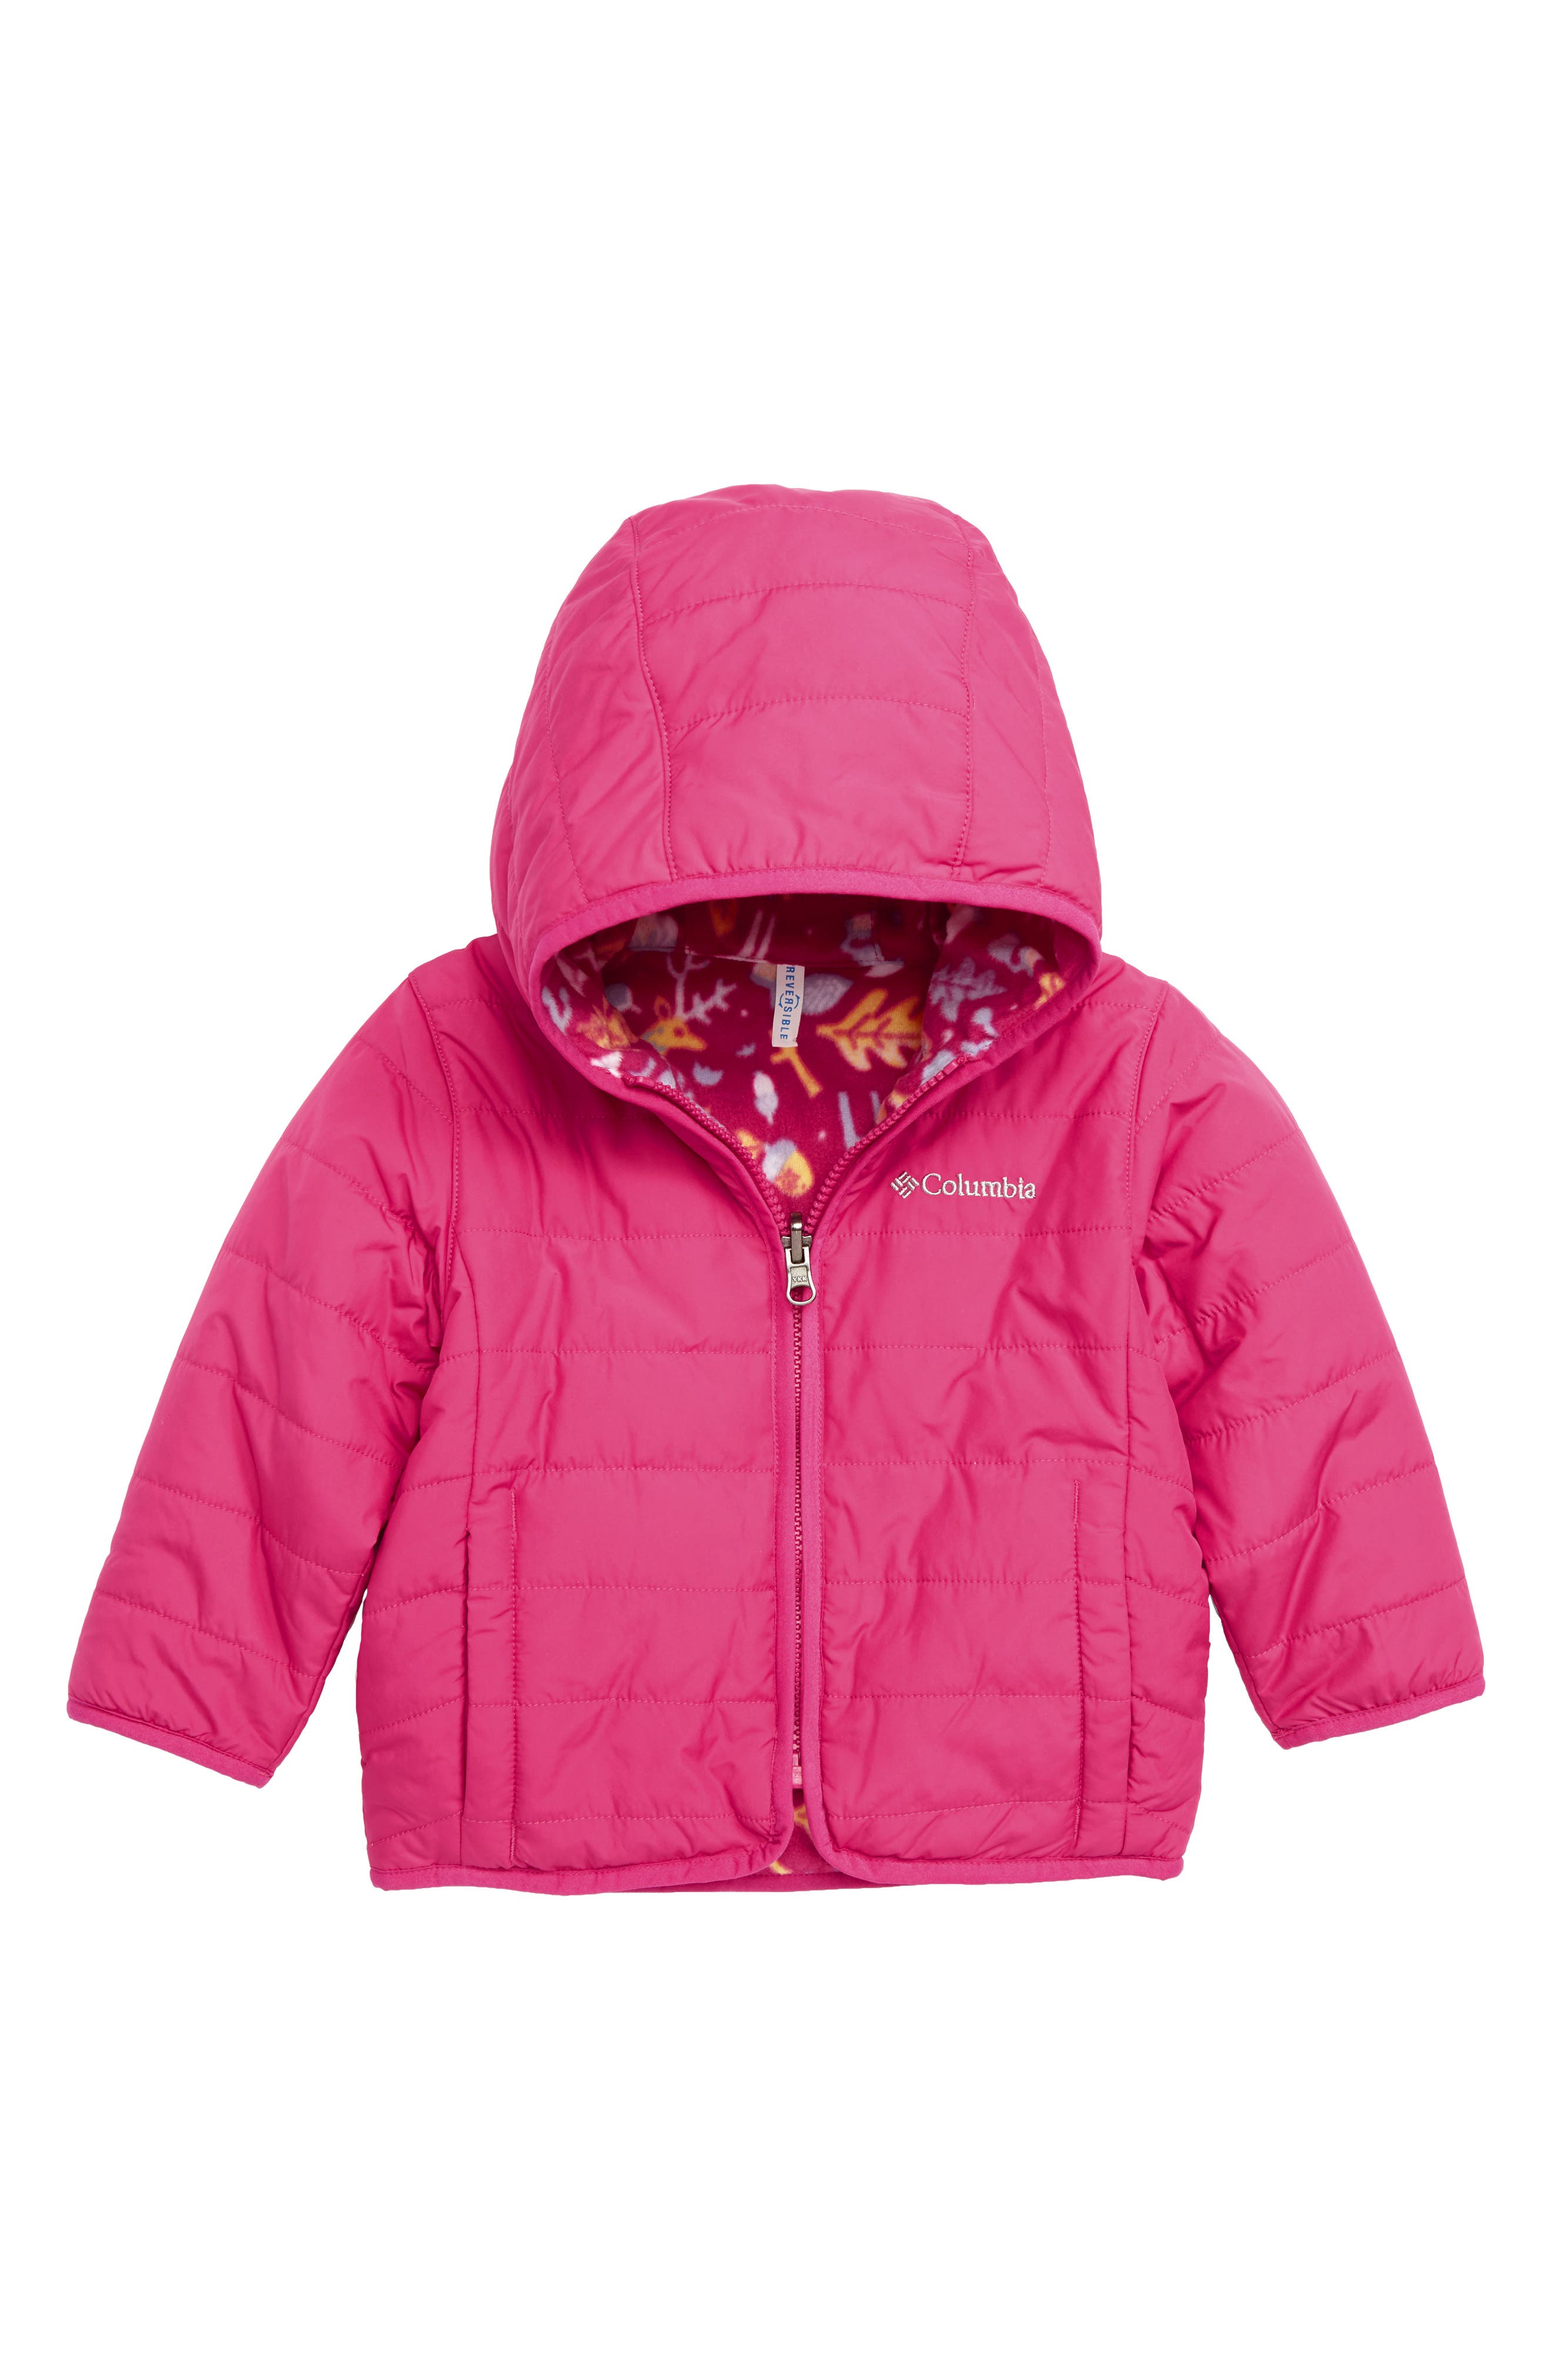 Double Trouble Reversible Water-Resistant Hooded Jacket,                             Main thumbnail 1, color,                             CACTUS PINK